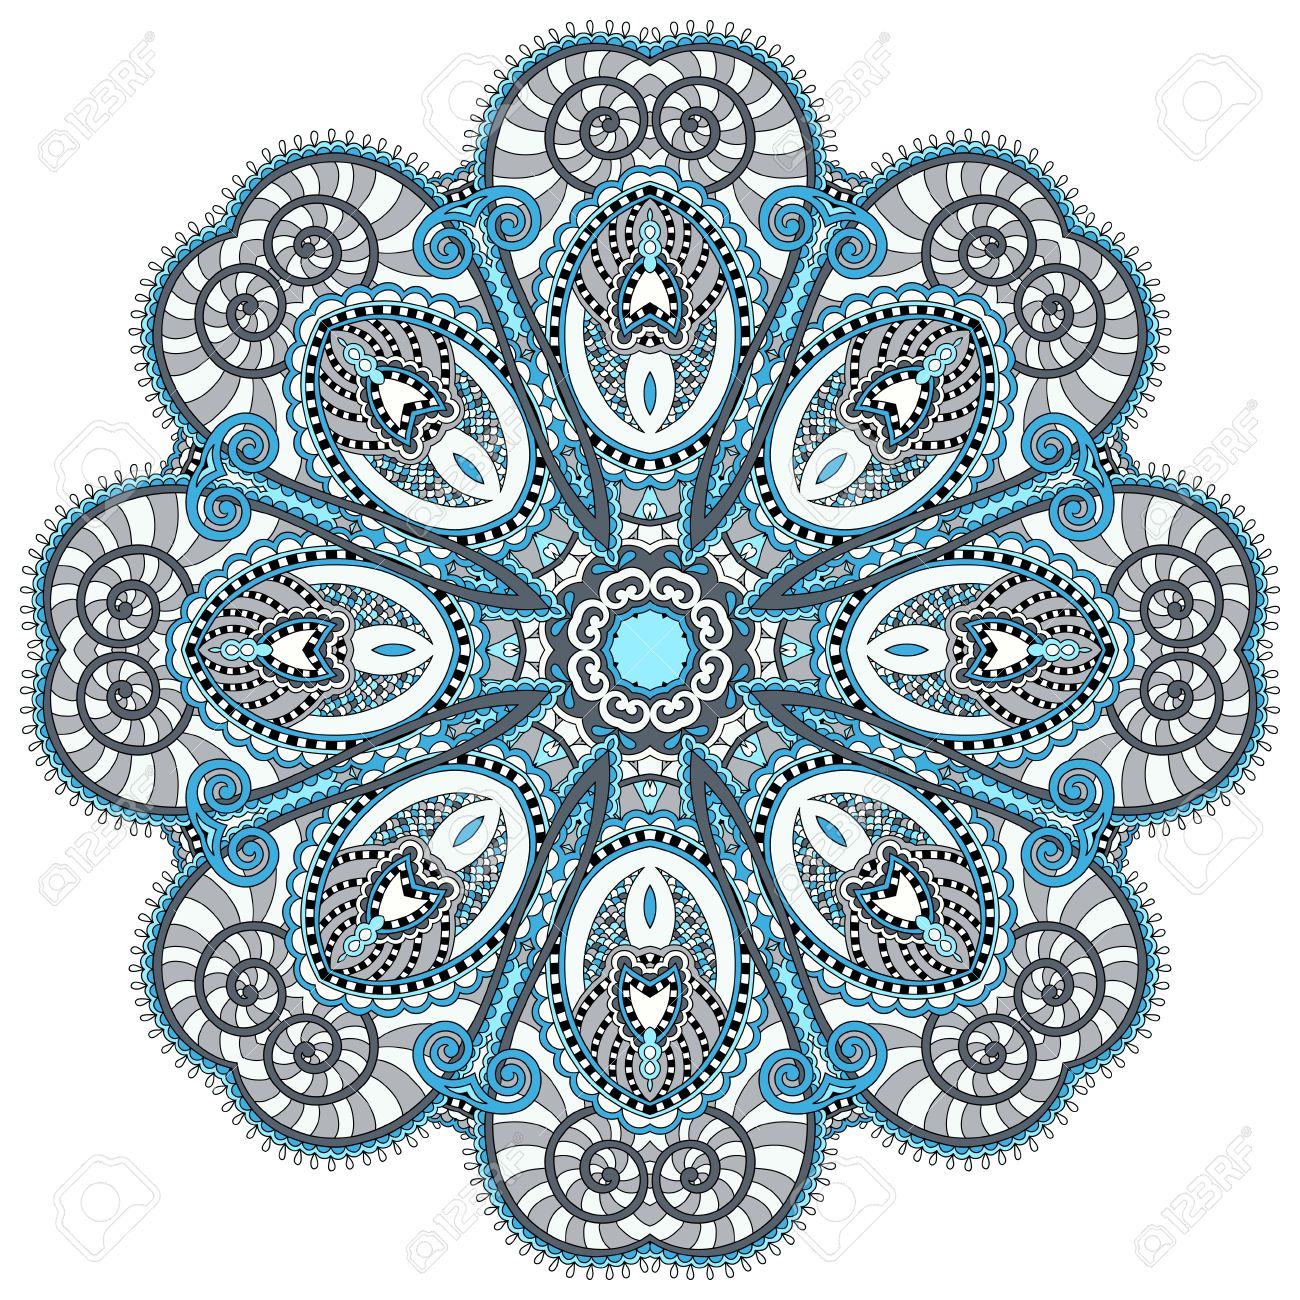 Mandala circle decorative spiritual indian symbol of lotus flower mandala circle decorative spiritual indian symbol of lotus flower round ornament pattern vector mightylinksfo